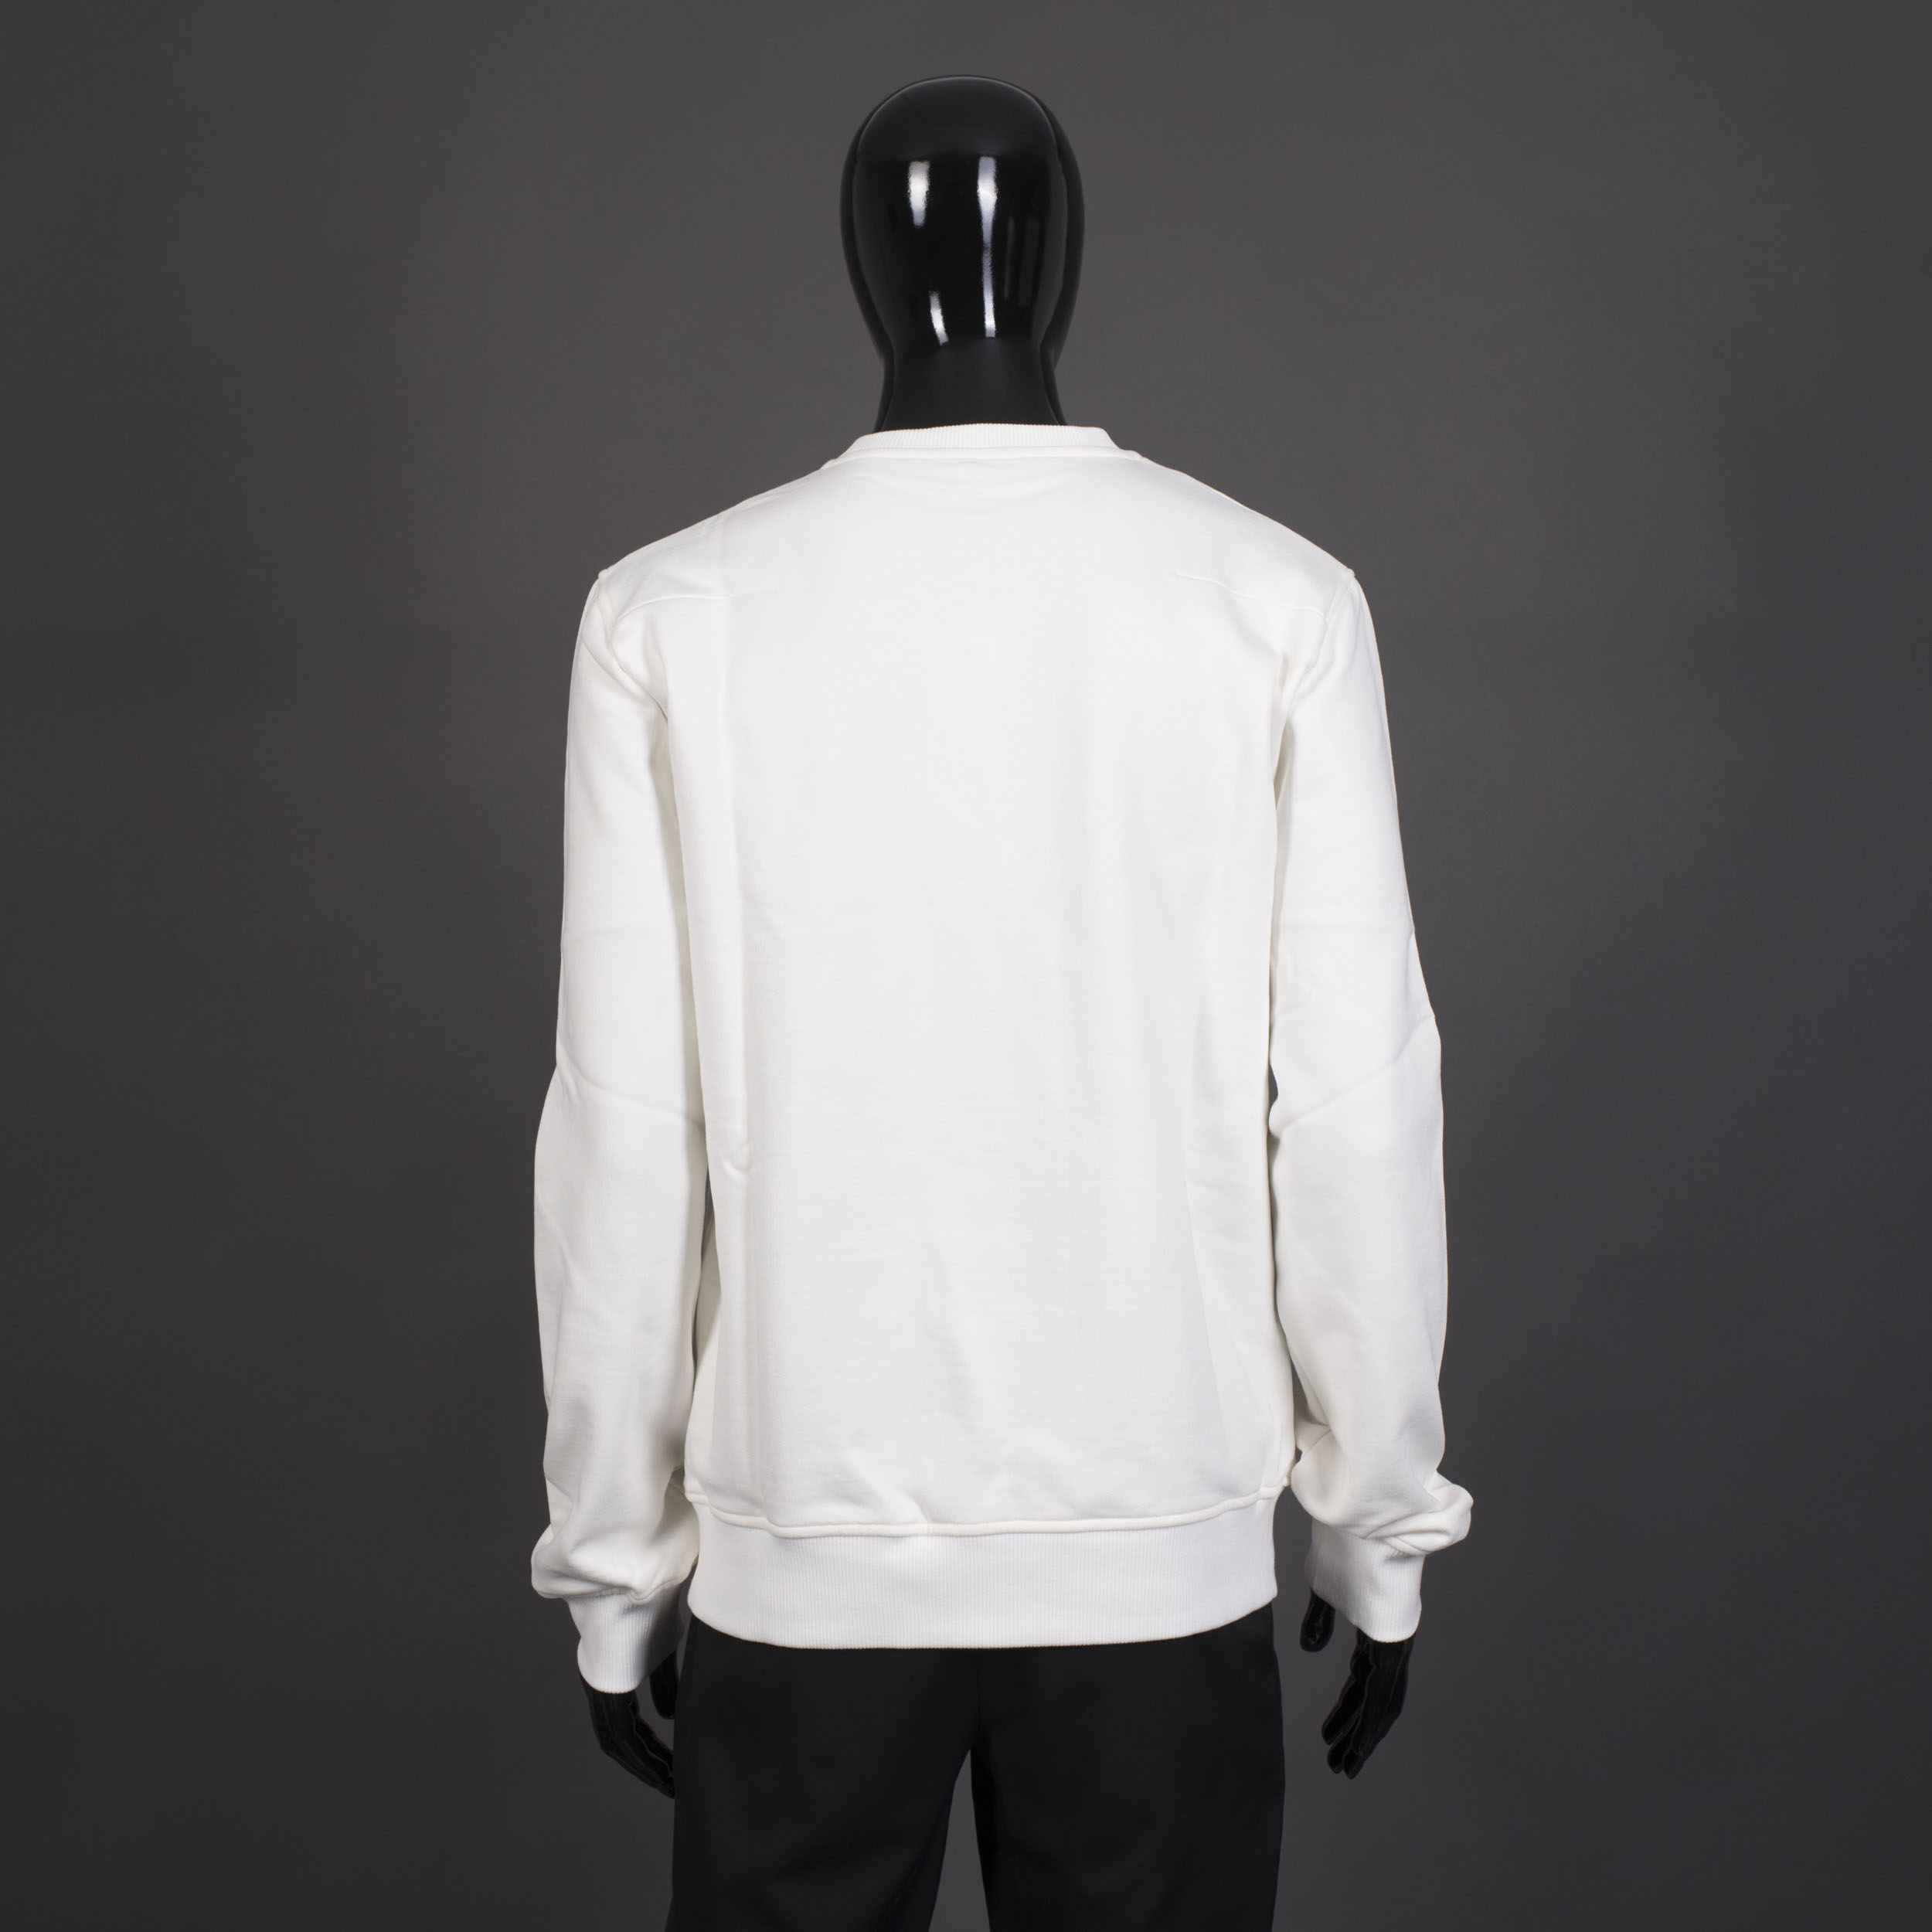 dd5abe9d DIOR x KAWS 1050$ Sweatshirt In White Cotton With Jeweled Bee ...